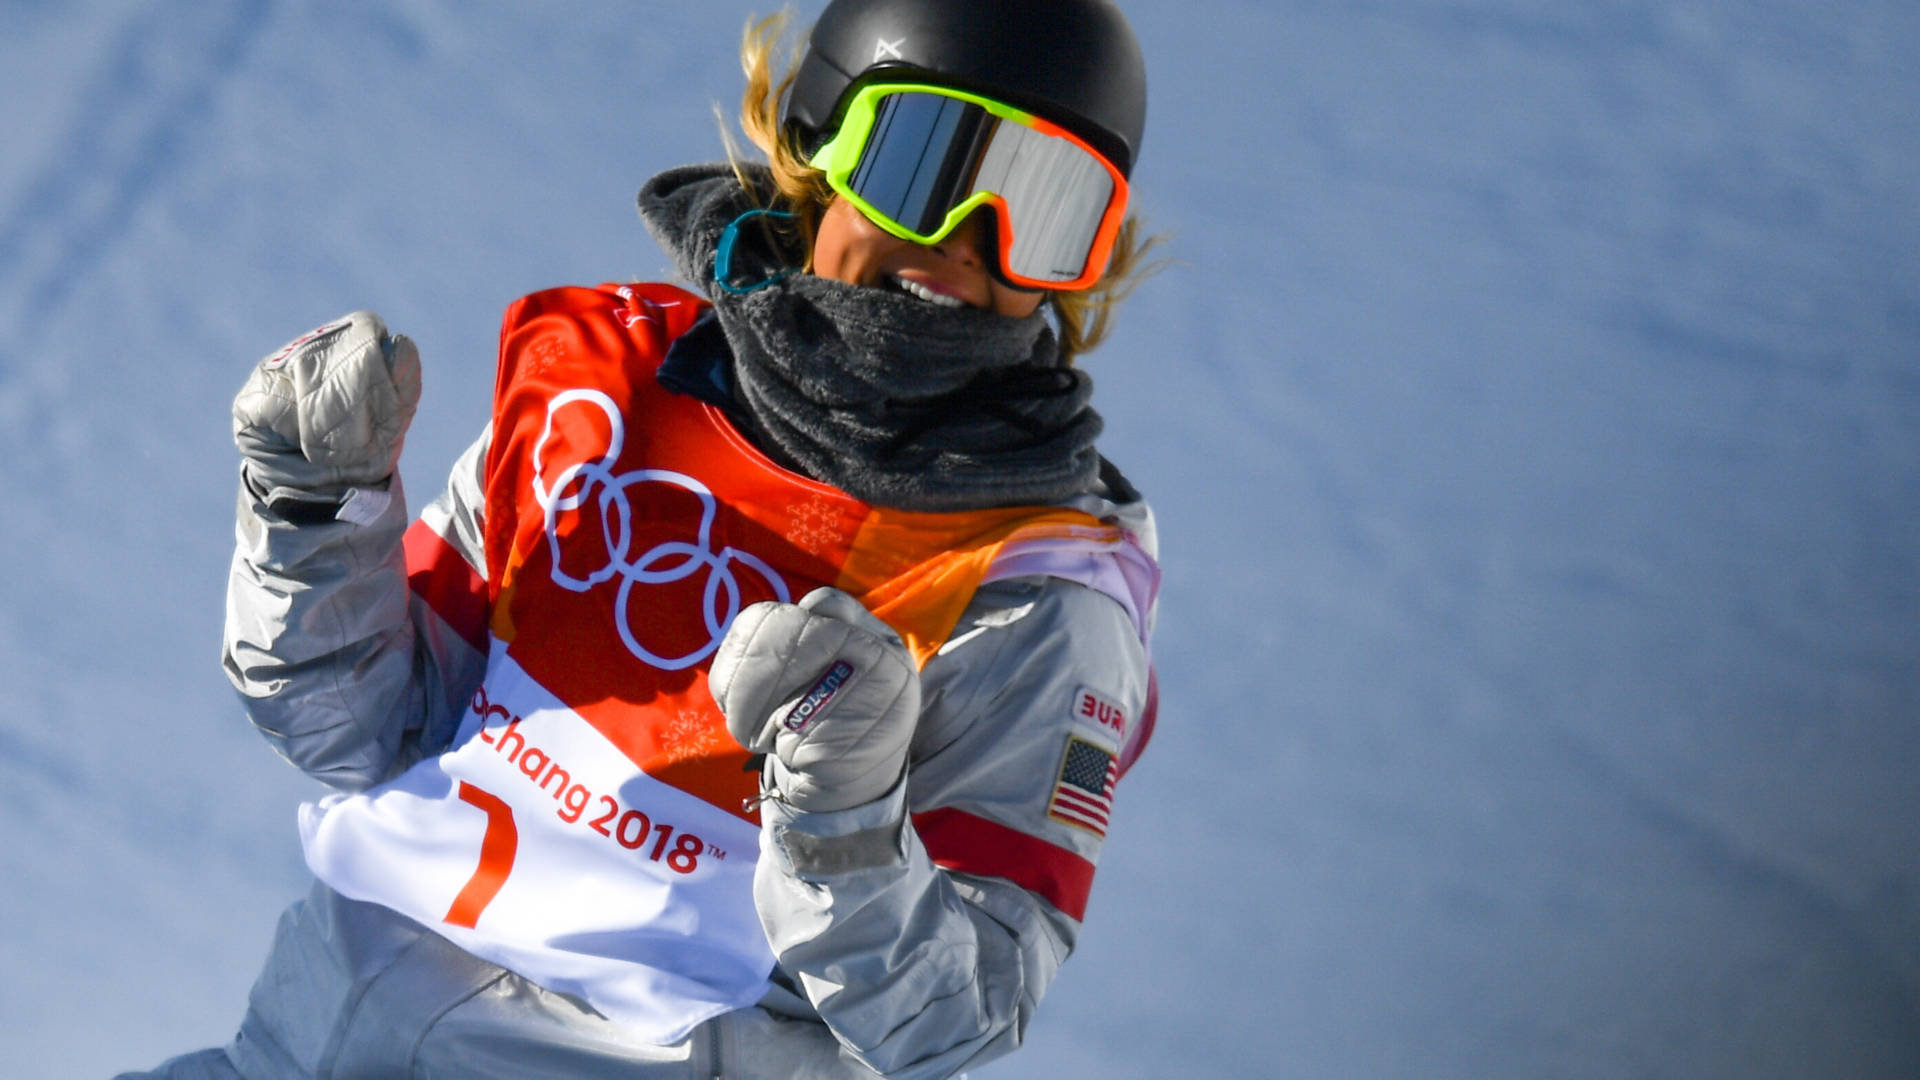 Chloe Kim won the gold medal in the snowboard women's halfpipe final at Phoenix Snow Park in the Winter Olympics in Pyeongchang, South Korea. Ramsey Cardy/Sportsfile via Getty Images